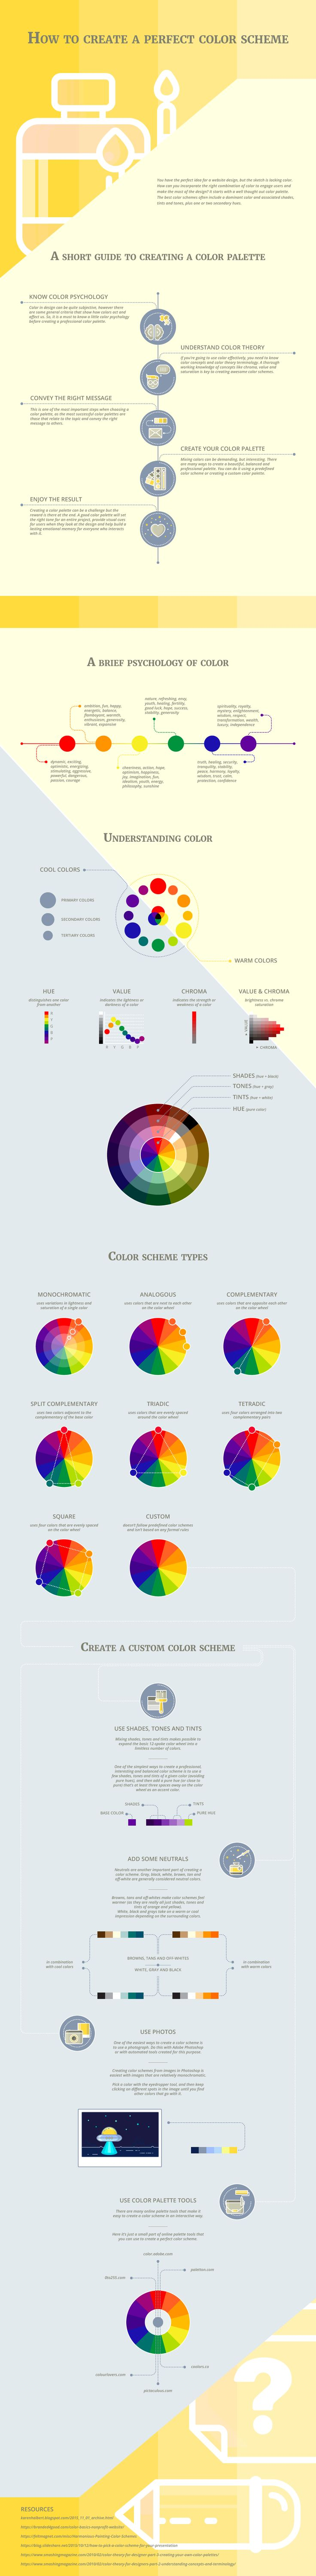 How to create a perfect color scheme - Colorpedia